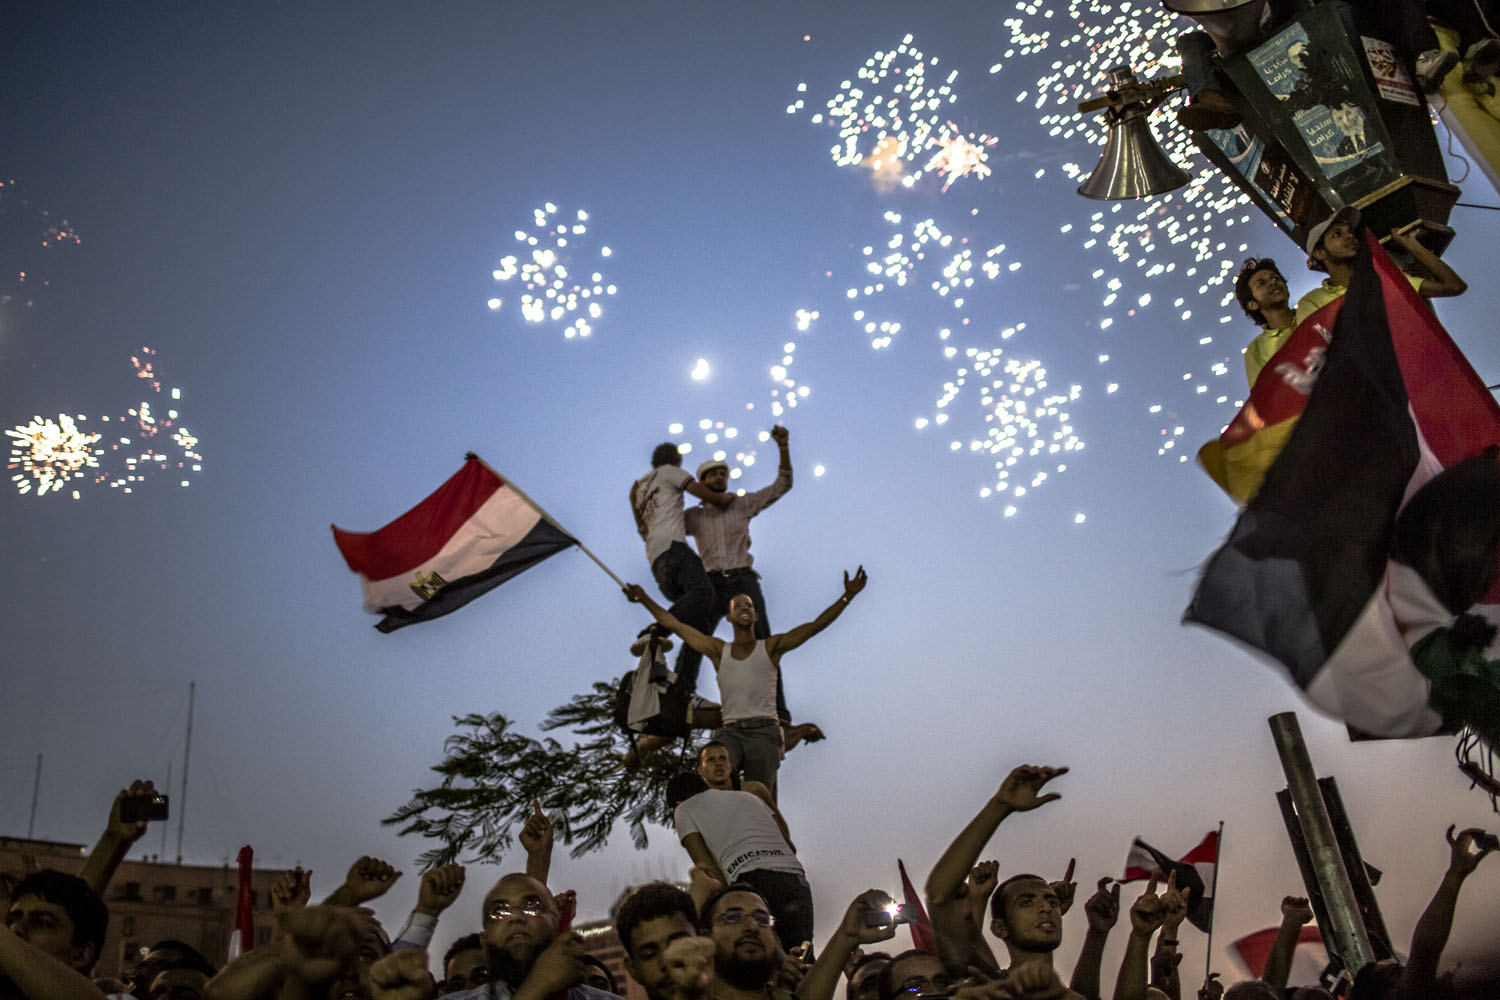 June 24, 2012, Cairo. Egyptians celebrate the election of their new president Mohamed Morsy in Tahrir Square.